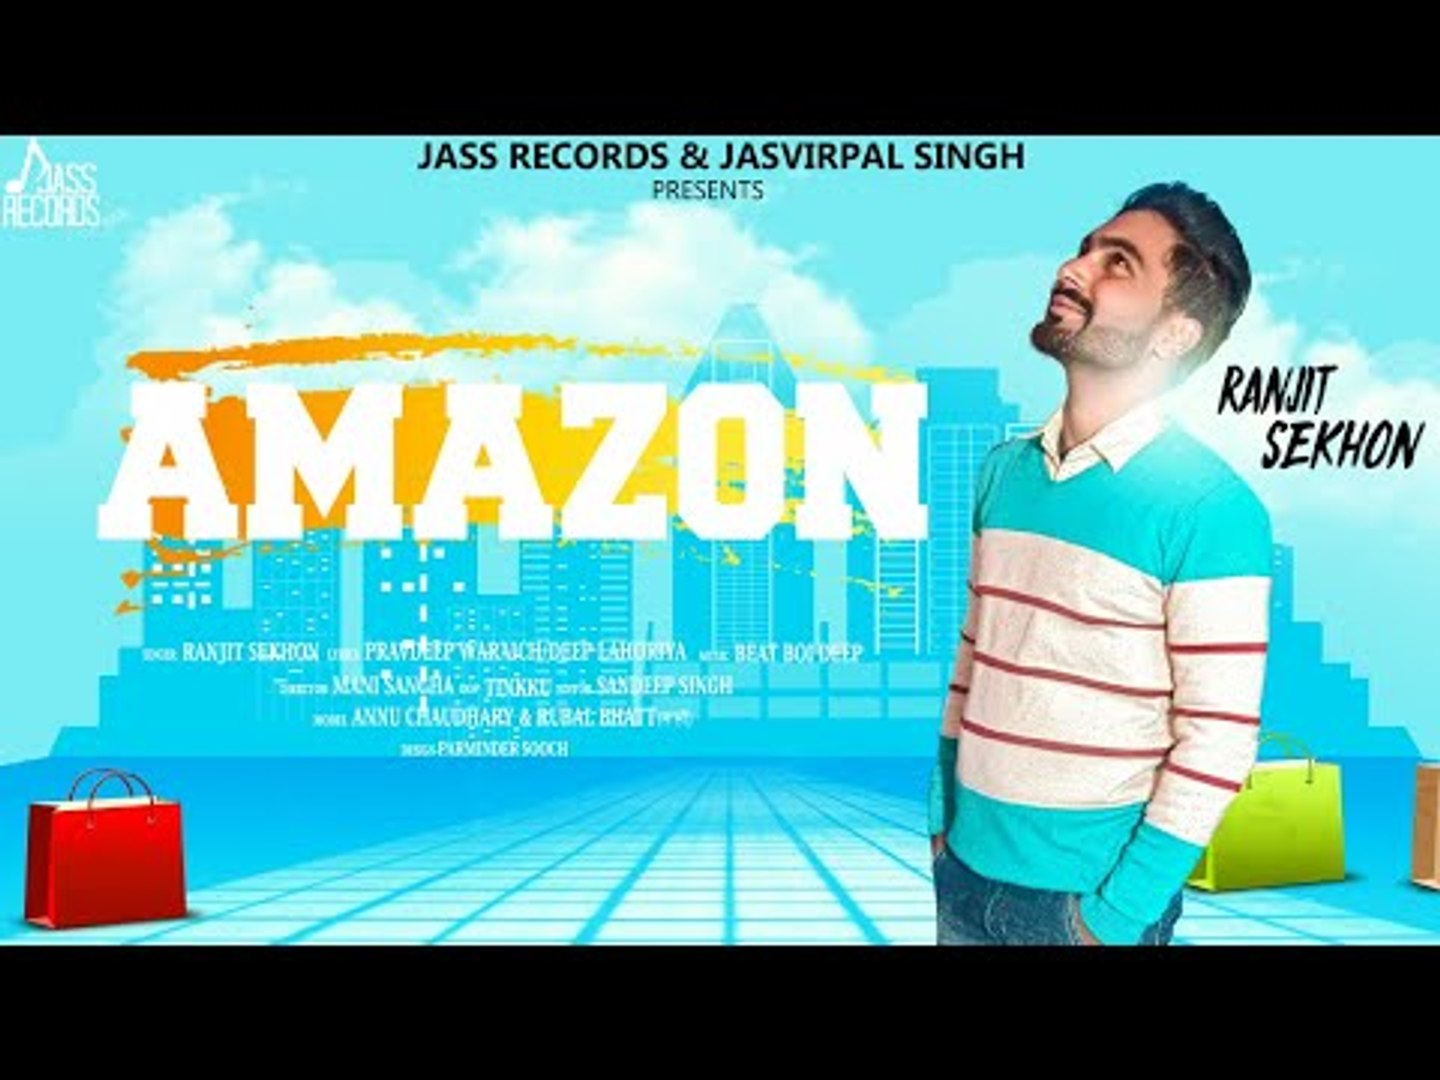 Amazon | (Full HD) | Ranjit Sekhon  | New Punjabi Songs 2018 | Latest Punjabi Songs 2018